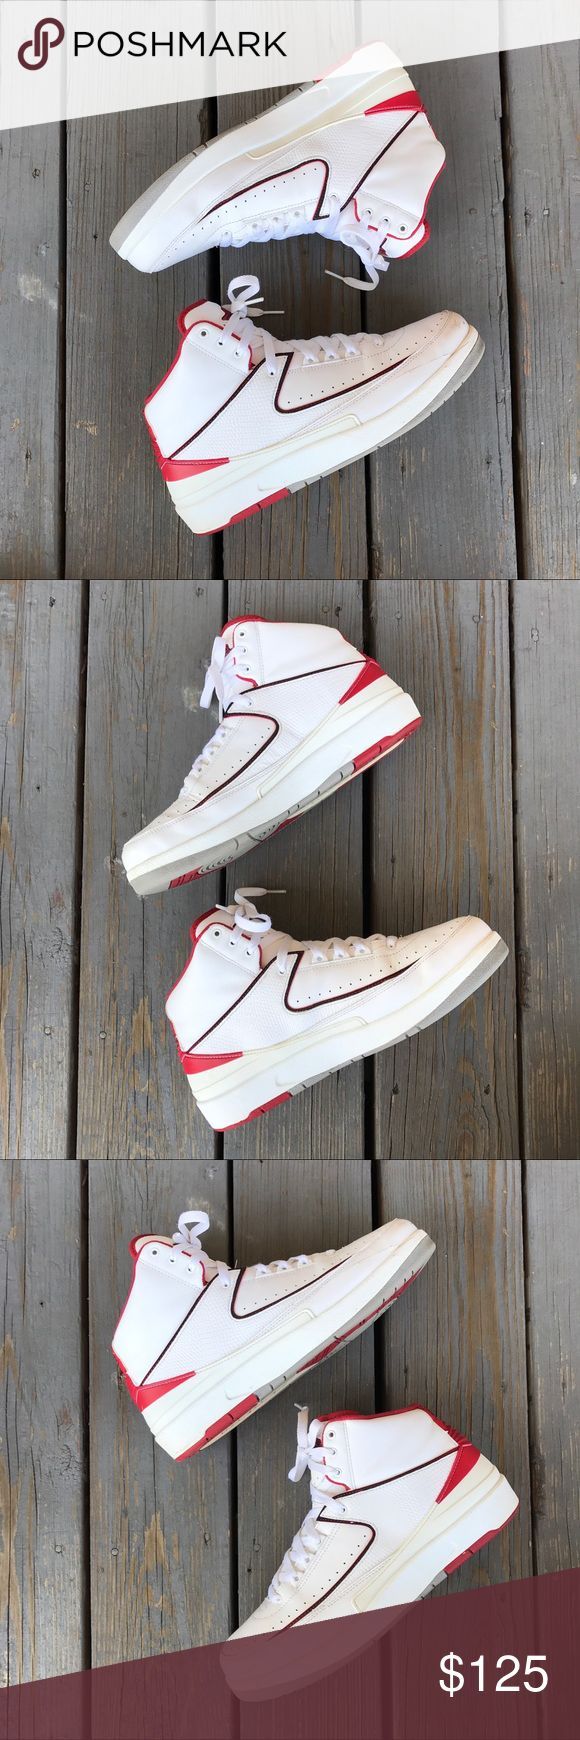 """JORDAN RETRO 2 """"COUNTDOWN PACK"""" *^ ZOOM IN ON PHOTOS FOR CLOSER LOOK **  PURCHASED: 2014  CONDITION: 7/10  ** NO BOX Jordan Shoes Sneakers"""